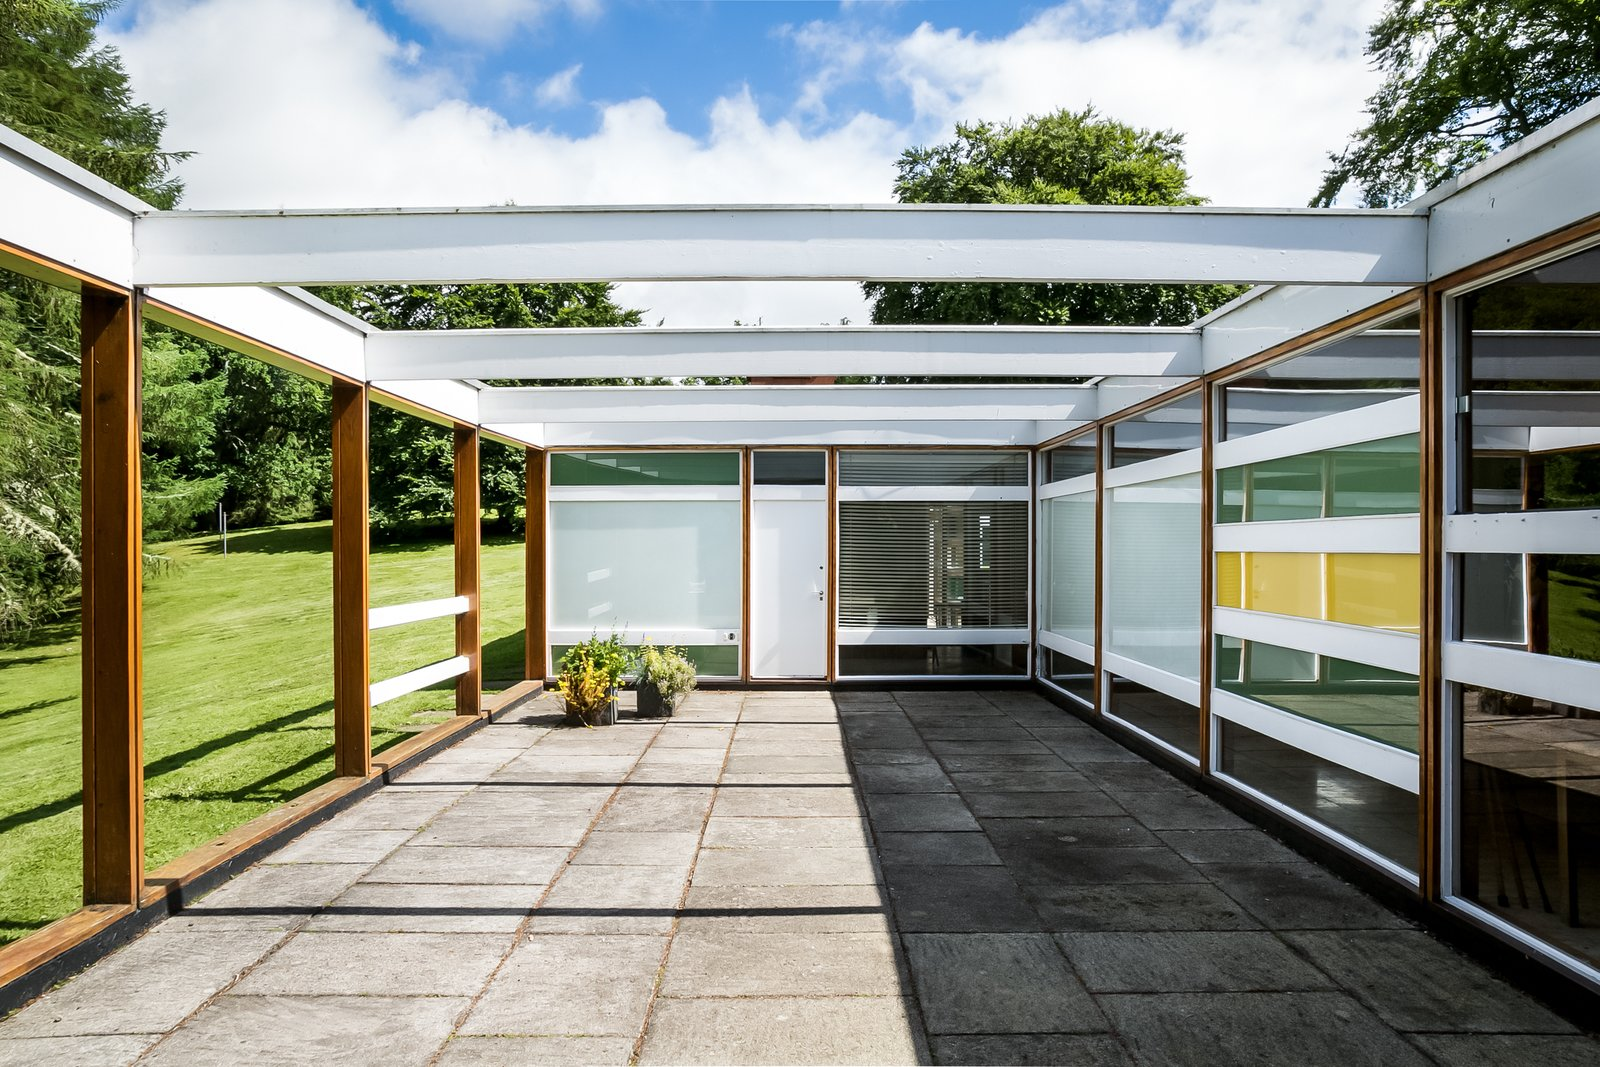 House, Wood, Metal, Concrete, Outdoor, Trees, Grass, Side Yard, Concrete, and Hardscapes  Best Outdoor House Side Yard Photos from The Iconic, Midcentury Home That Peter Womersley Designed For Bernat Klein Asks $1.02M